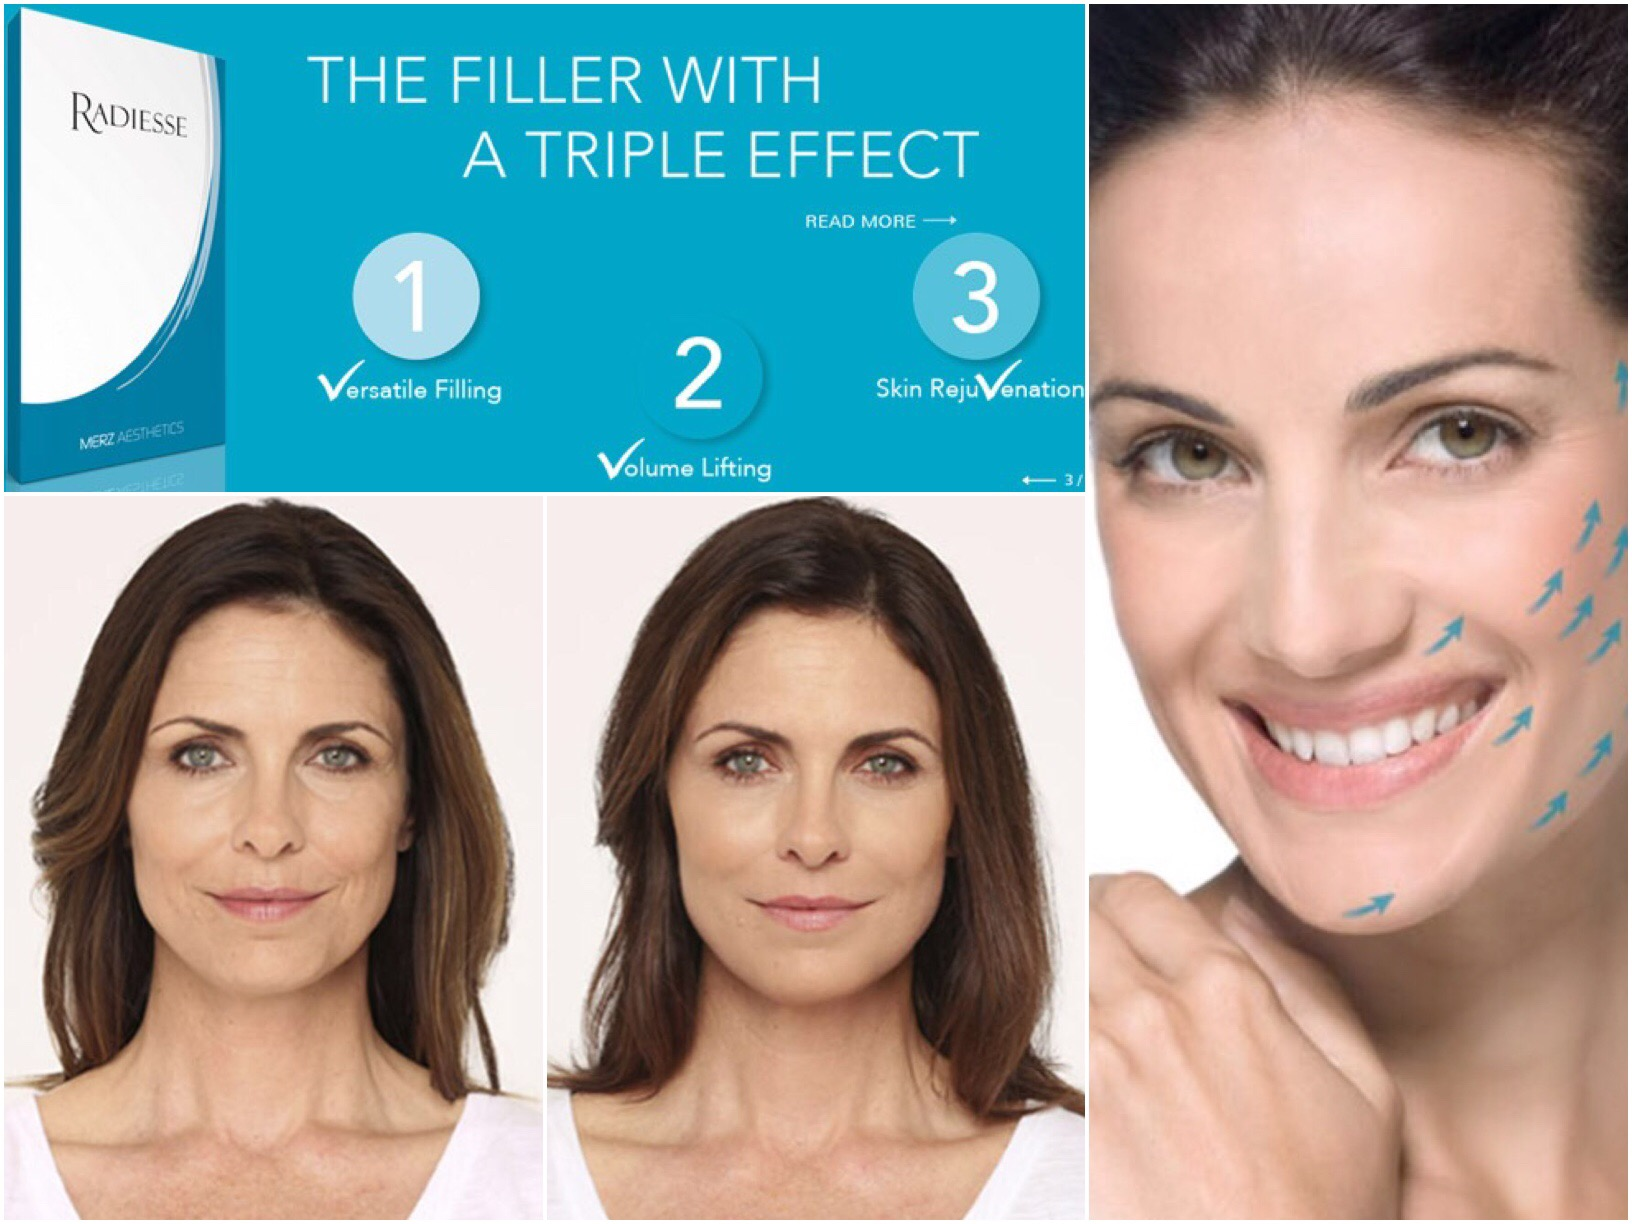 coastal-valley-dermatology-monterey-radiesse-filler-contour-photo